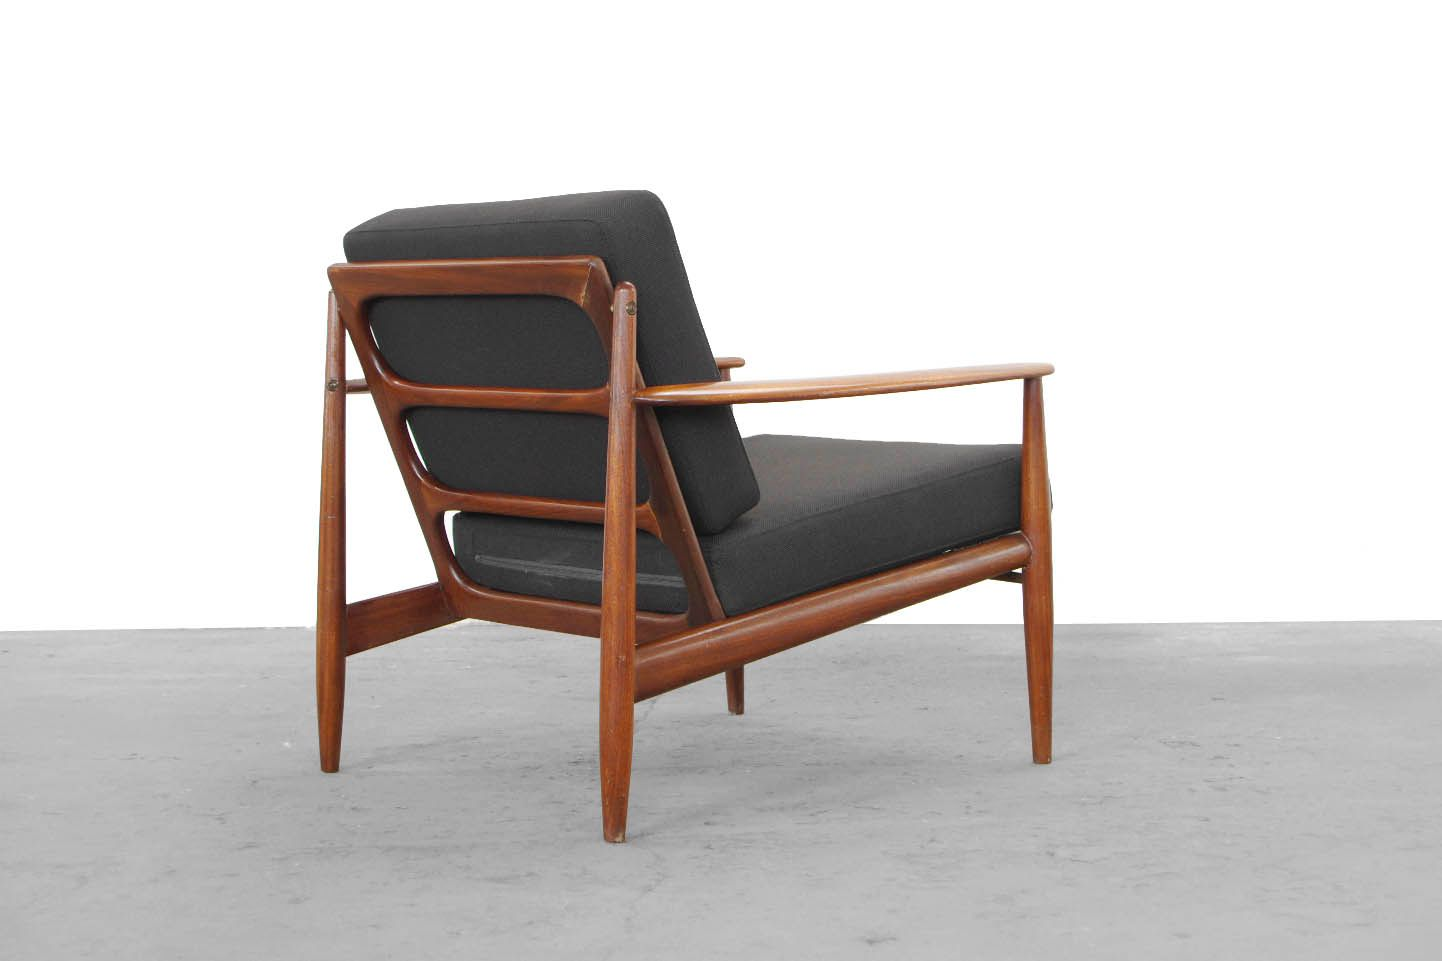 Danish modern chairs 1960 set of 2 for sale at pamono for Modern chairs for sale